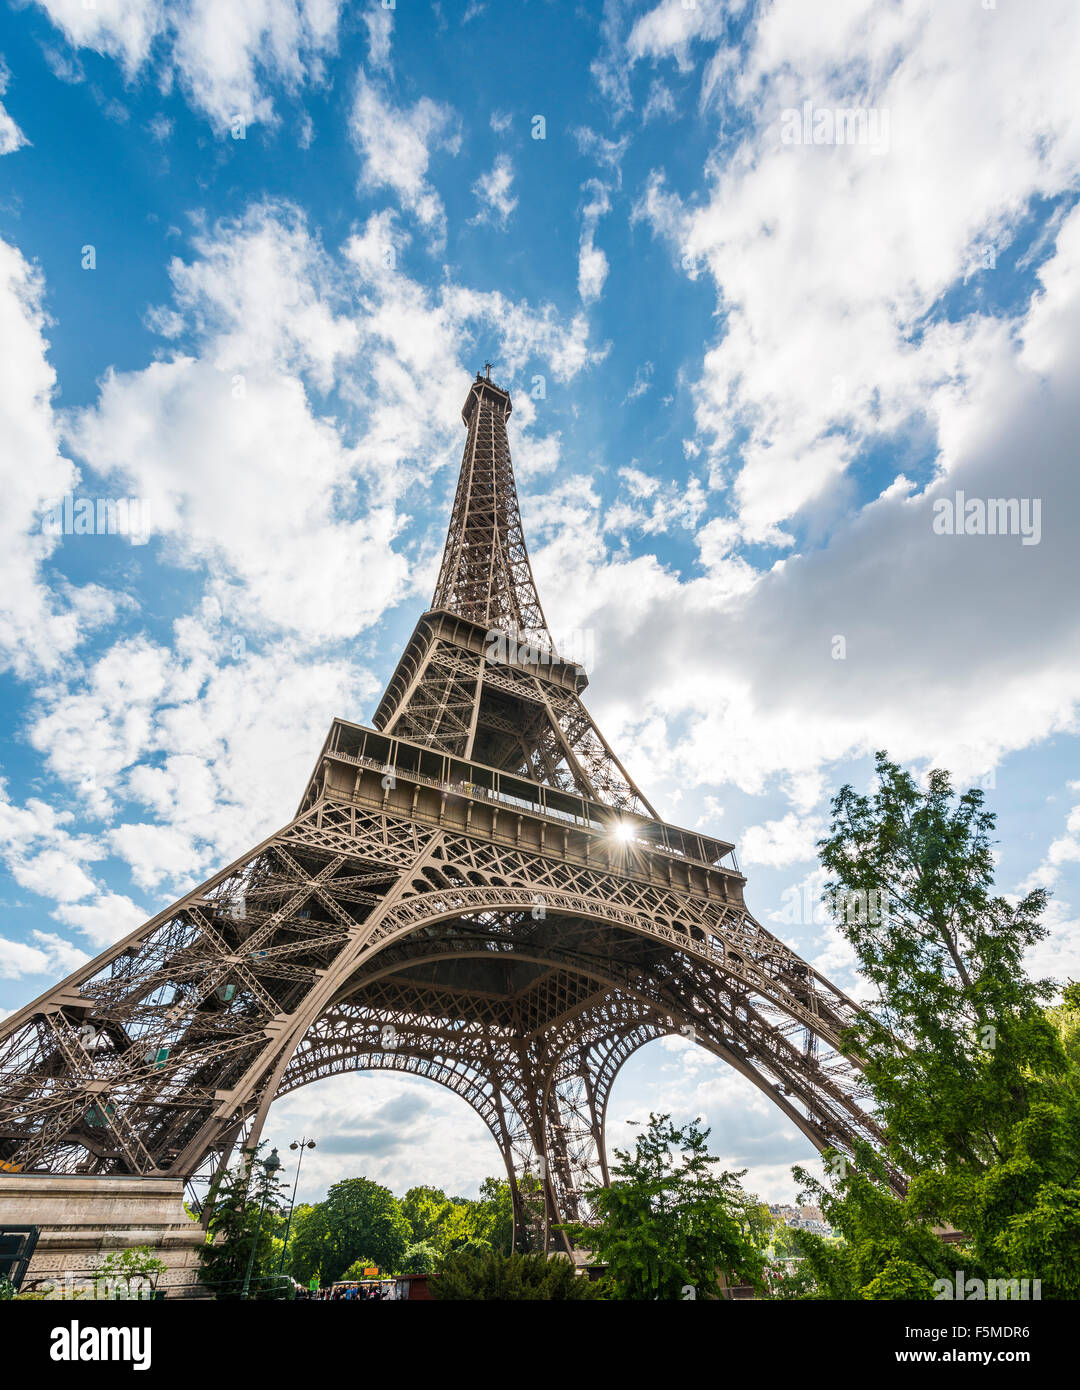 La Tour Eiffel, tour Eiffel, Paris, Ile-de-France, France Photo Stock